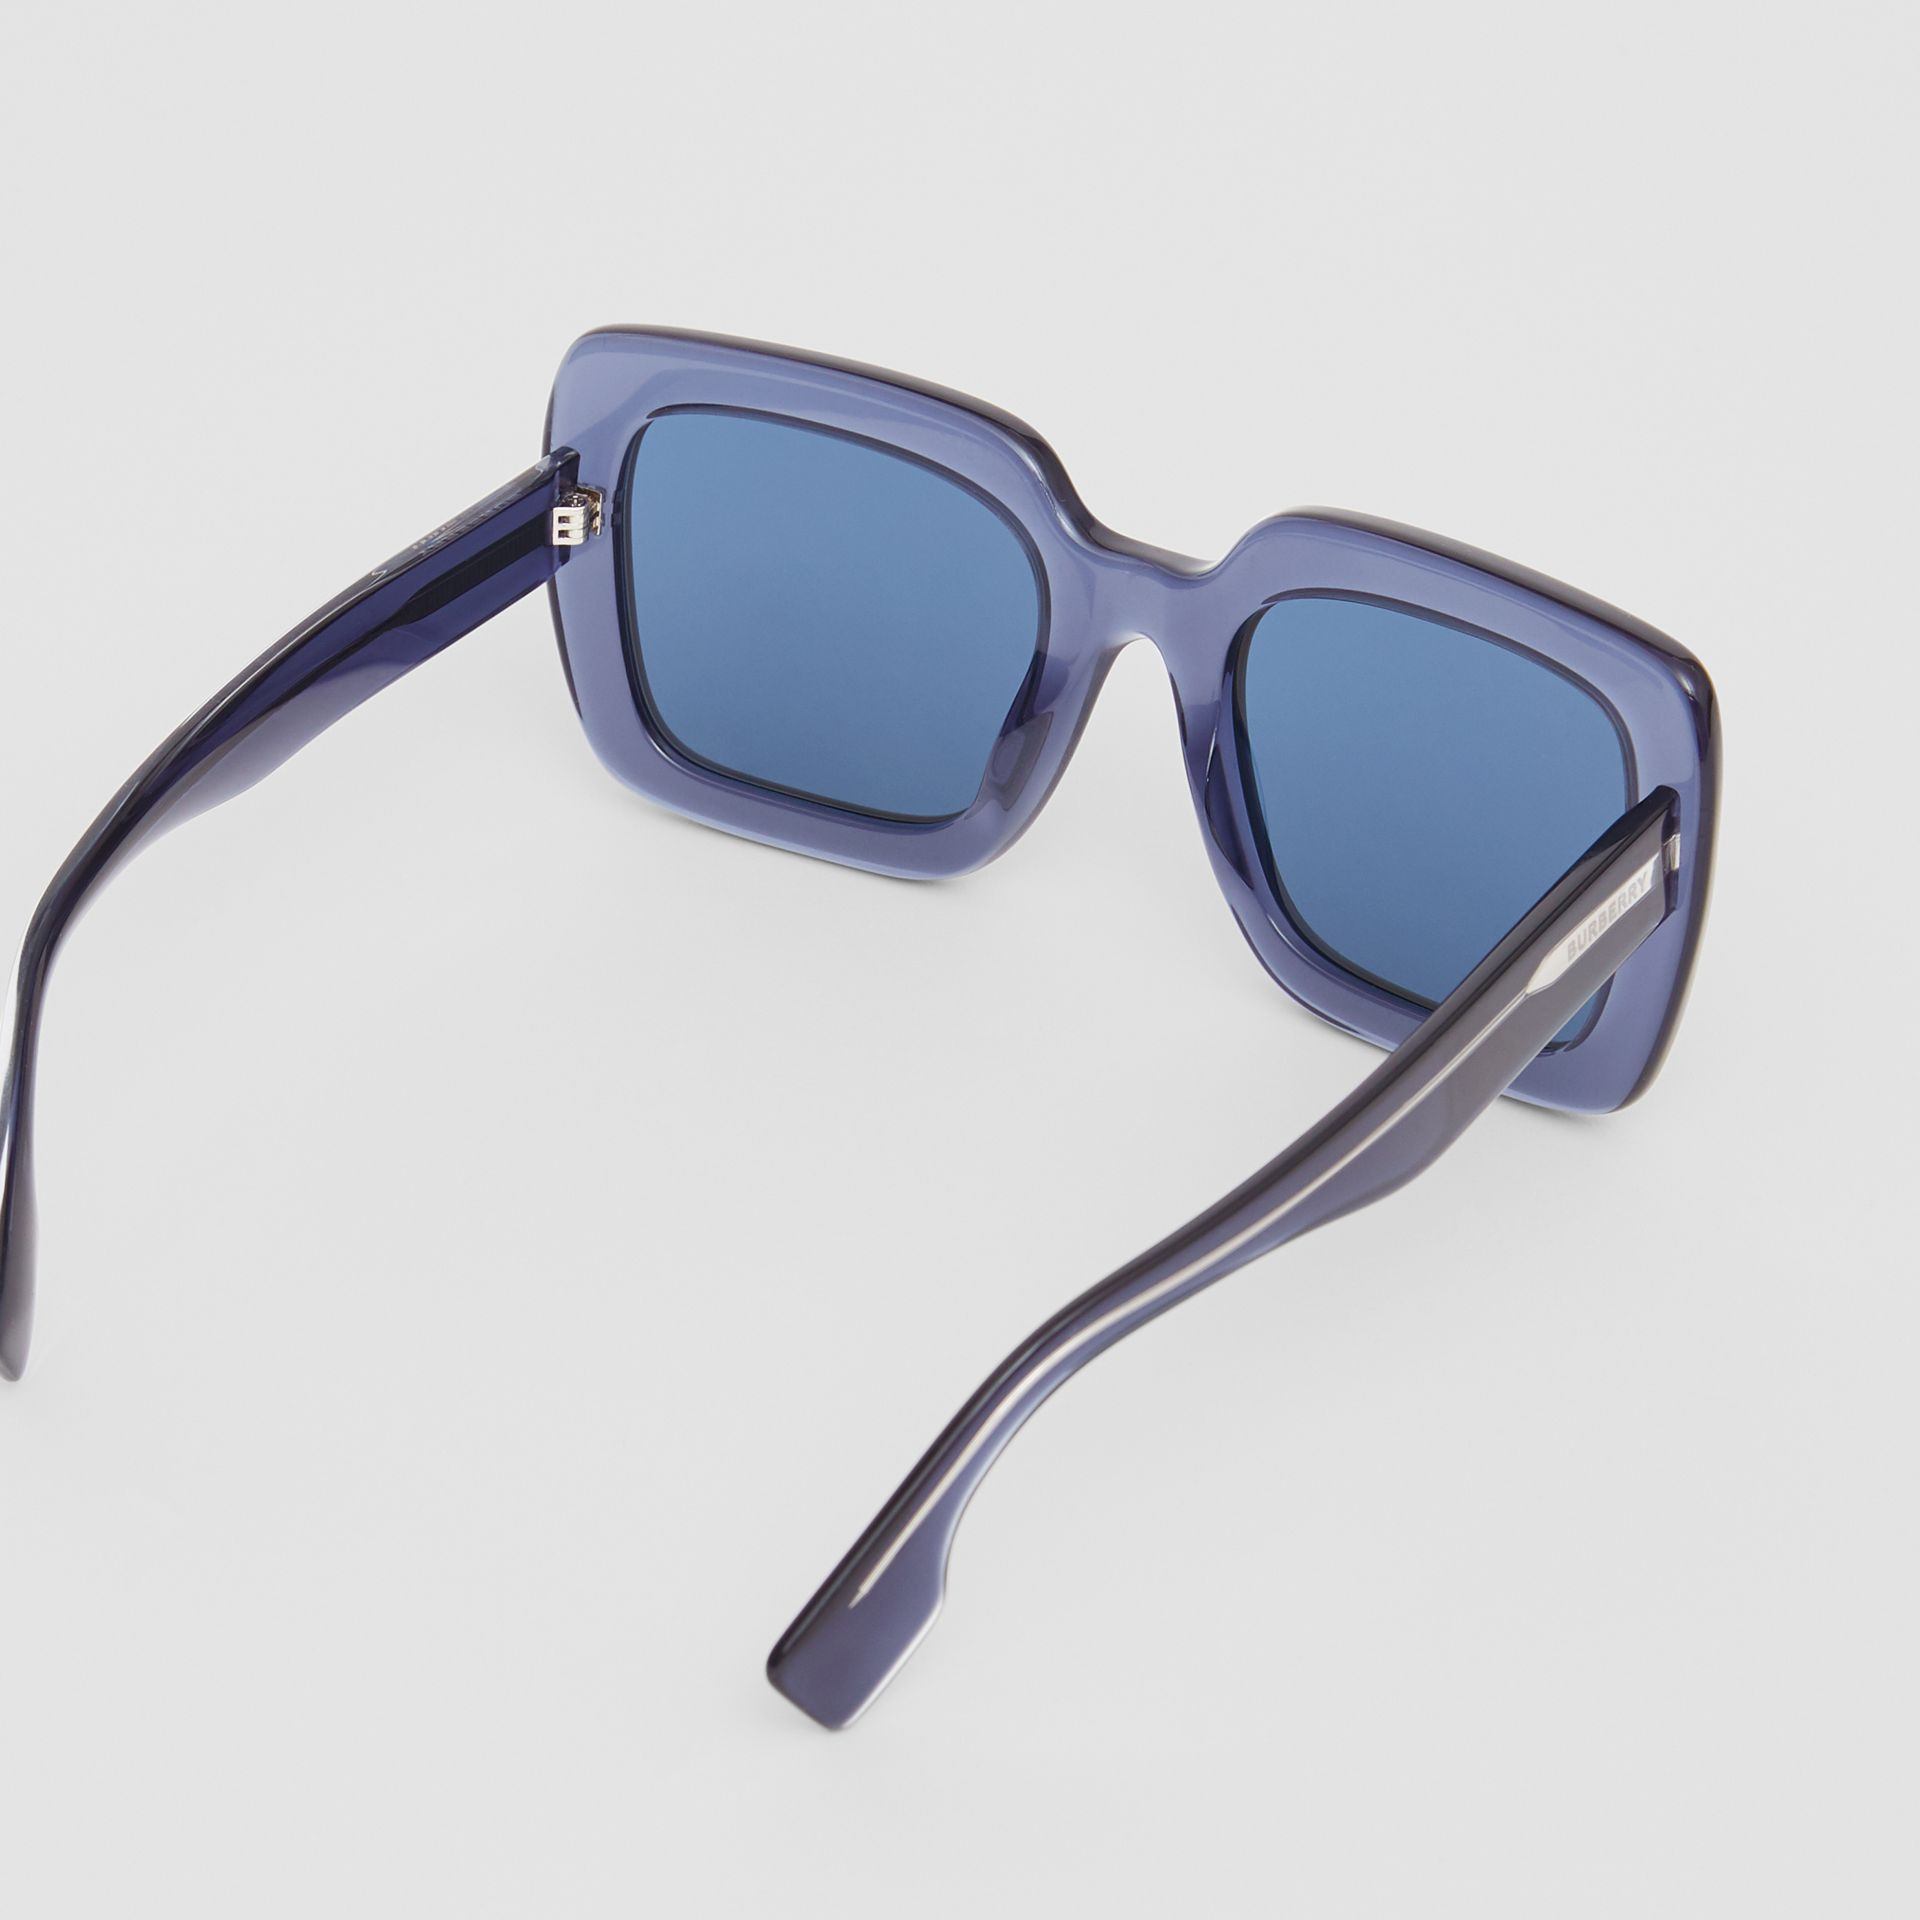 Oversized Square Frame Sunglasses in Blue - Women | Burberry United Kingdom - gallery image 3